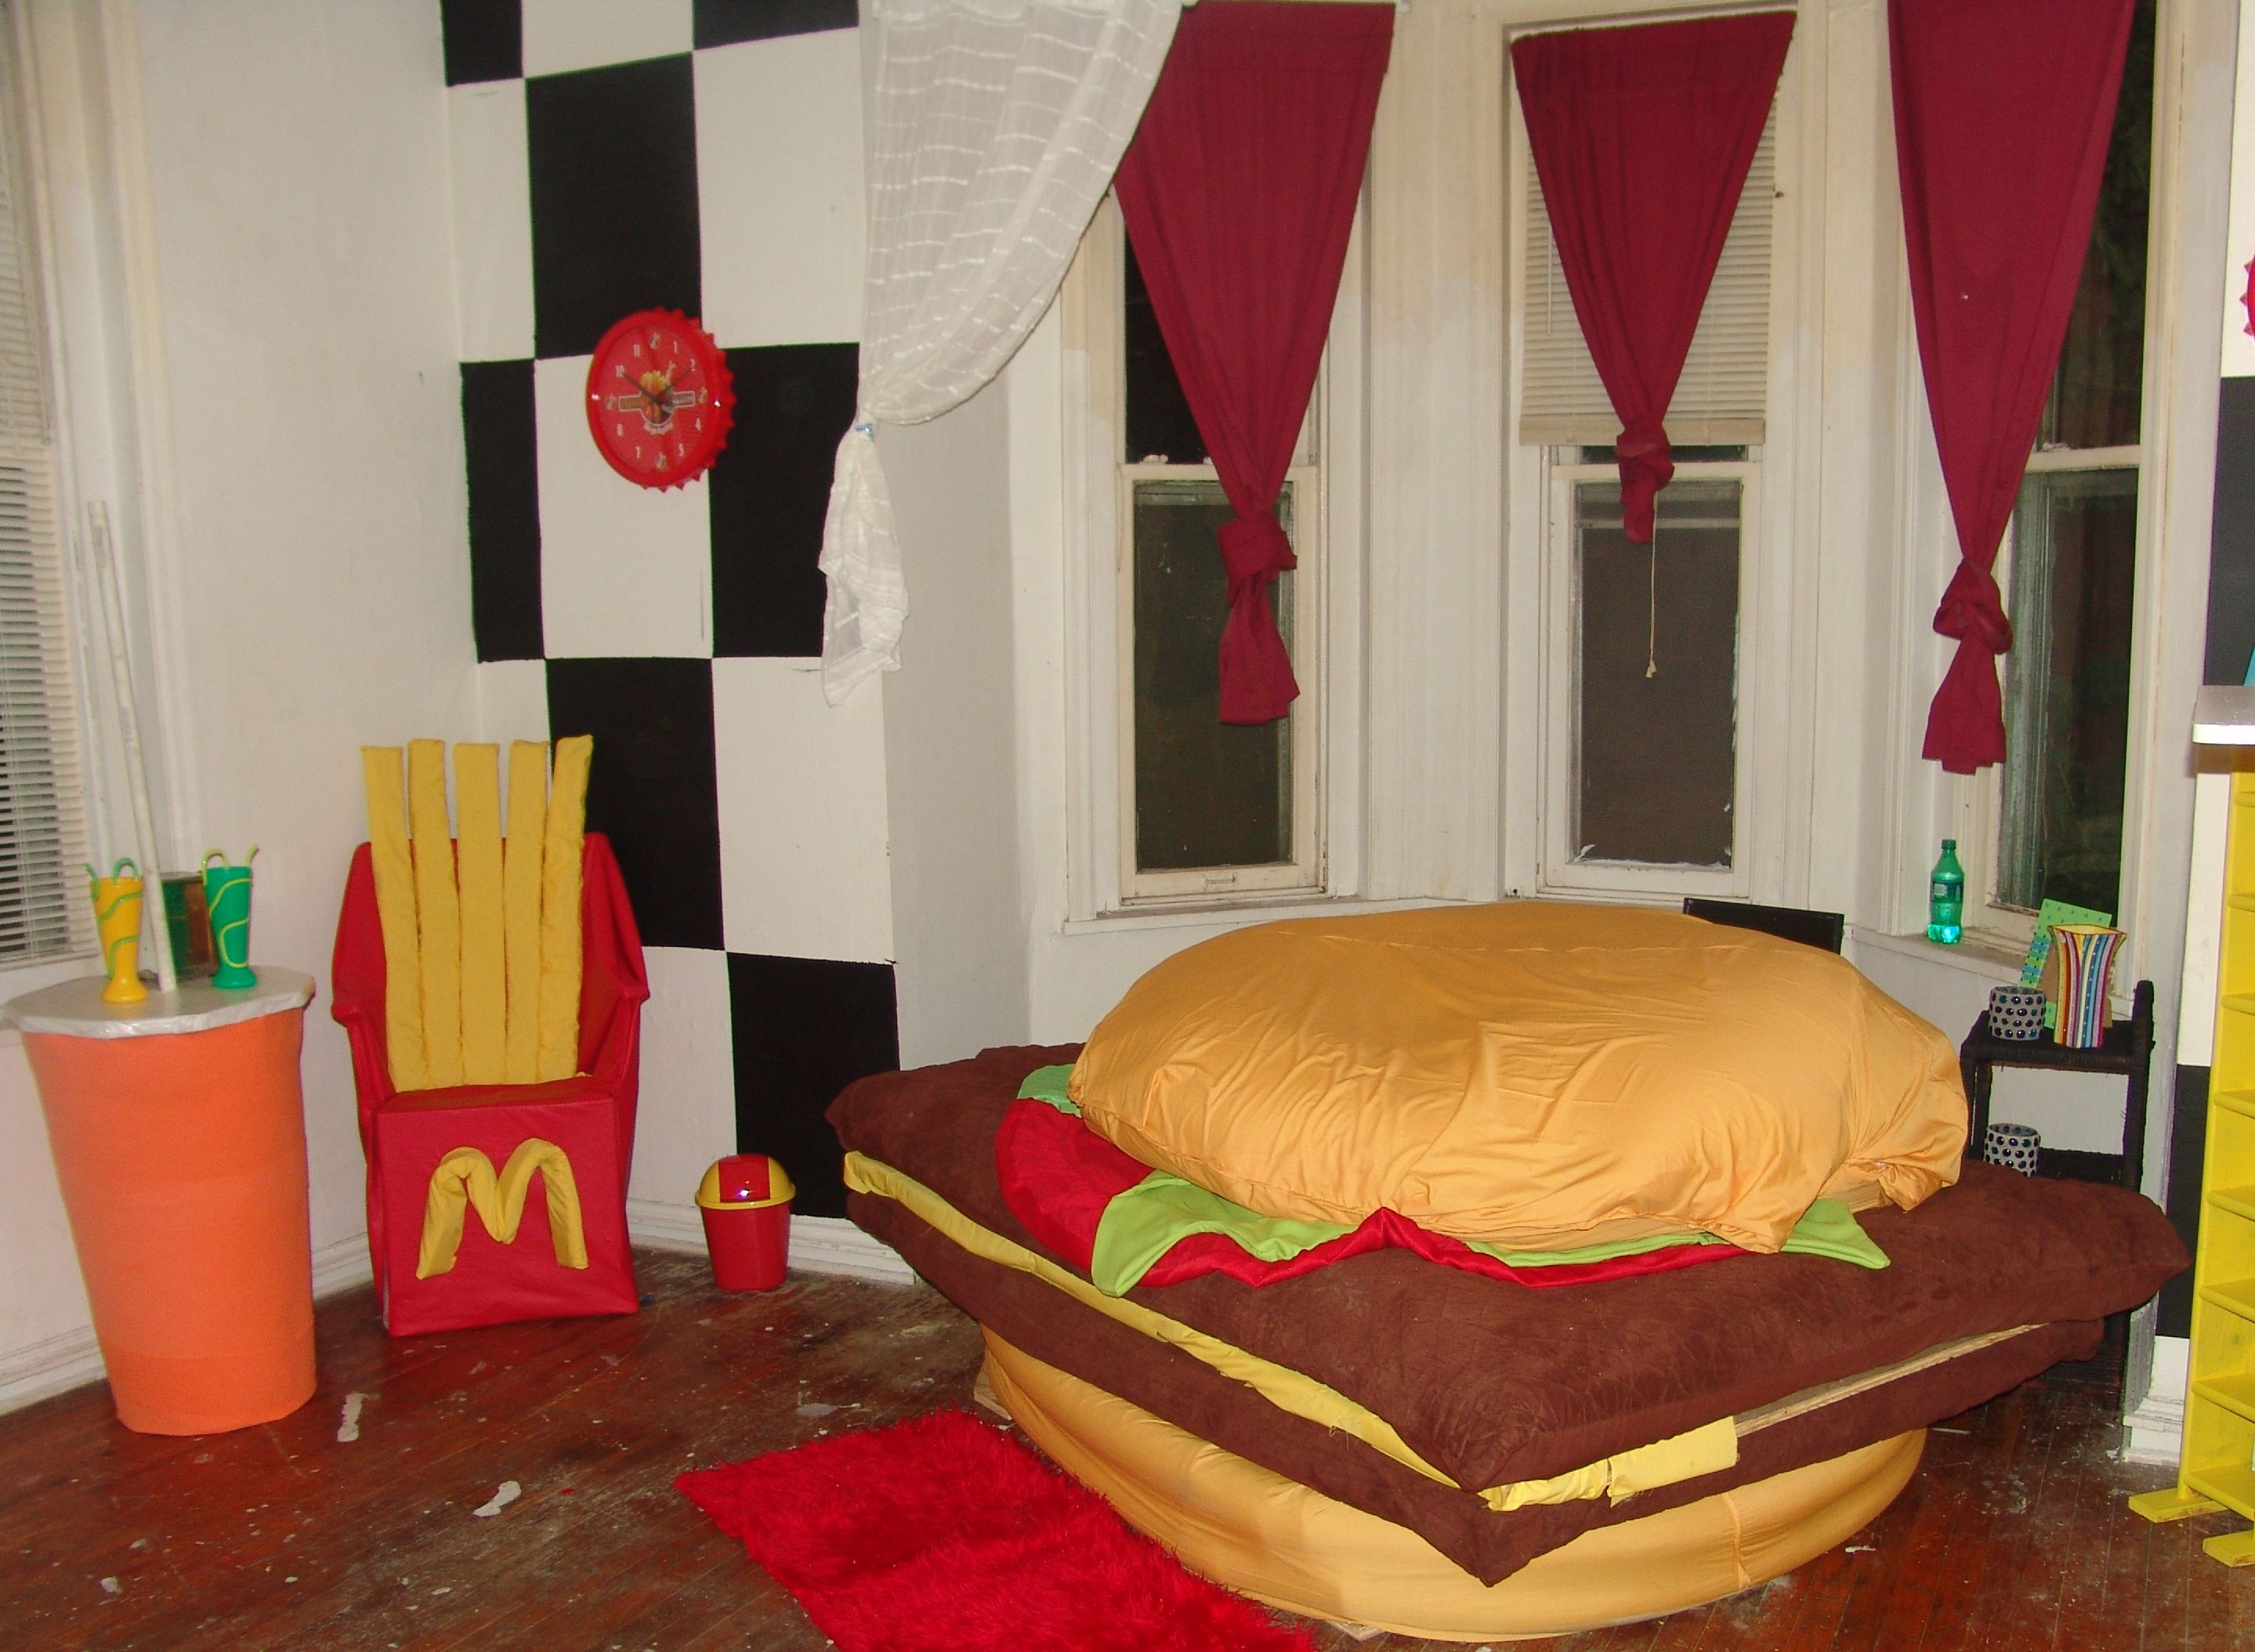 Diy Hamburger Bed My Finished Diy Projects Hamburger Bed Dream